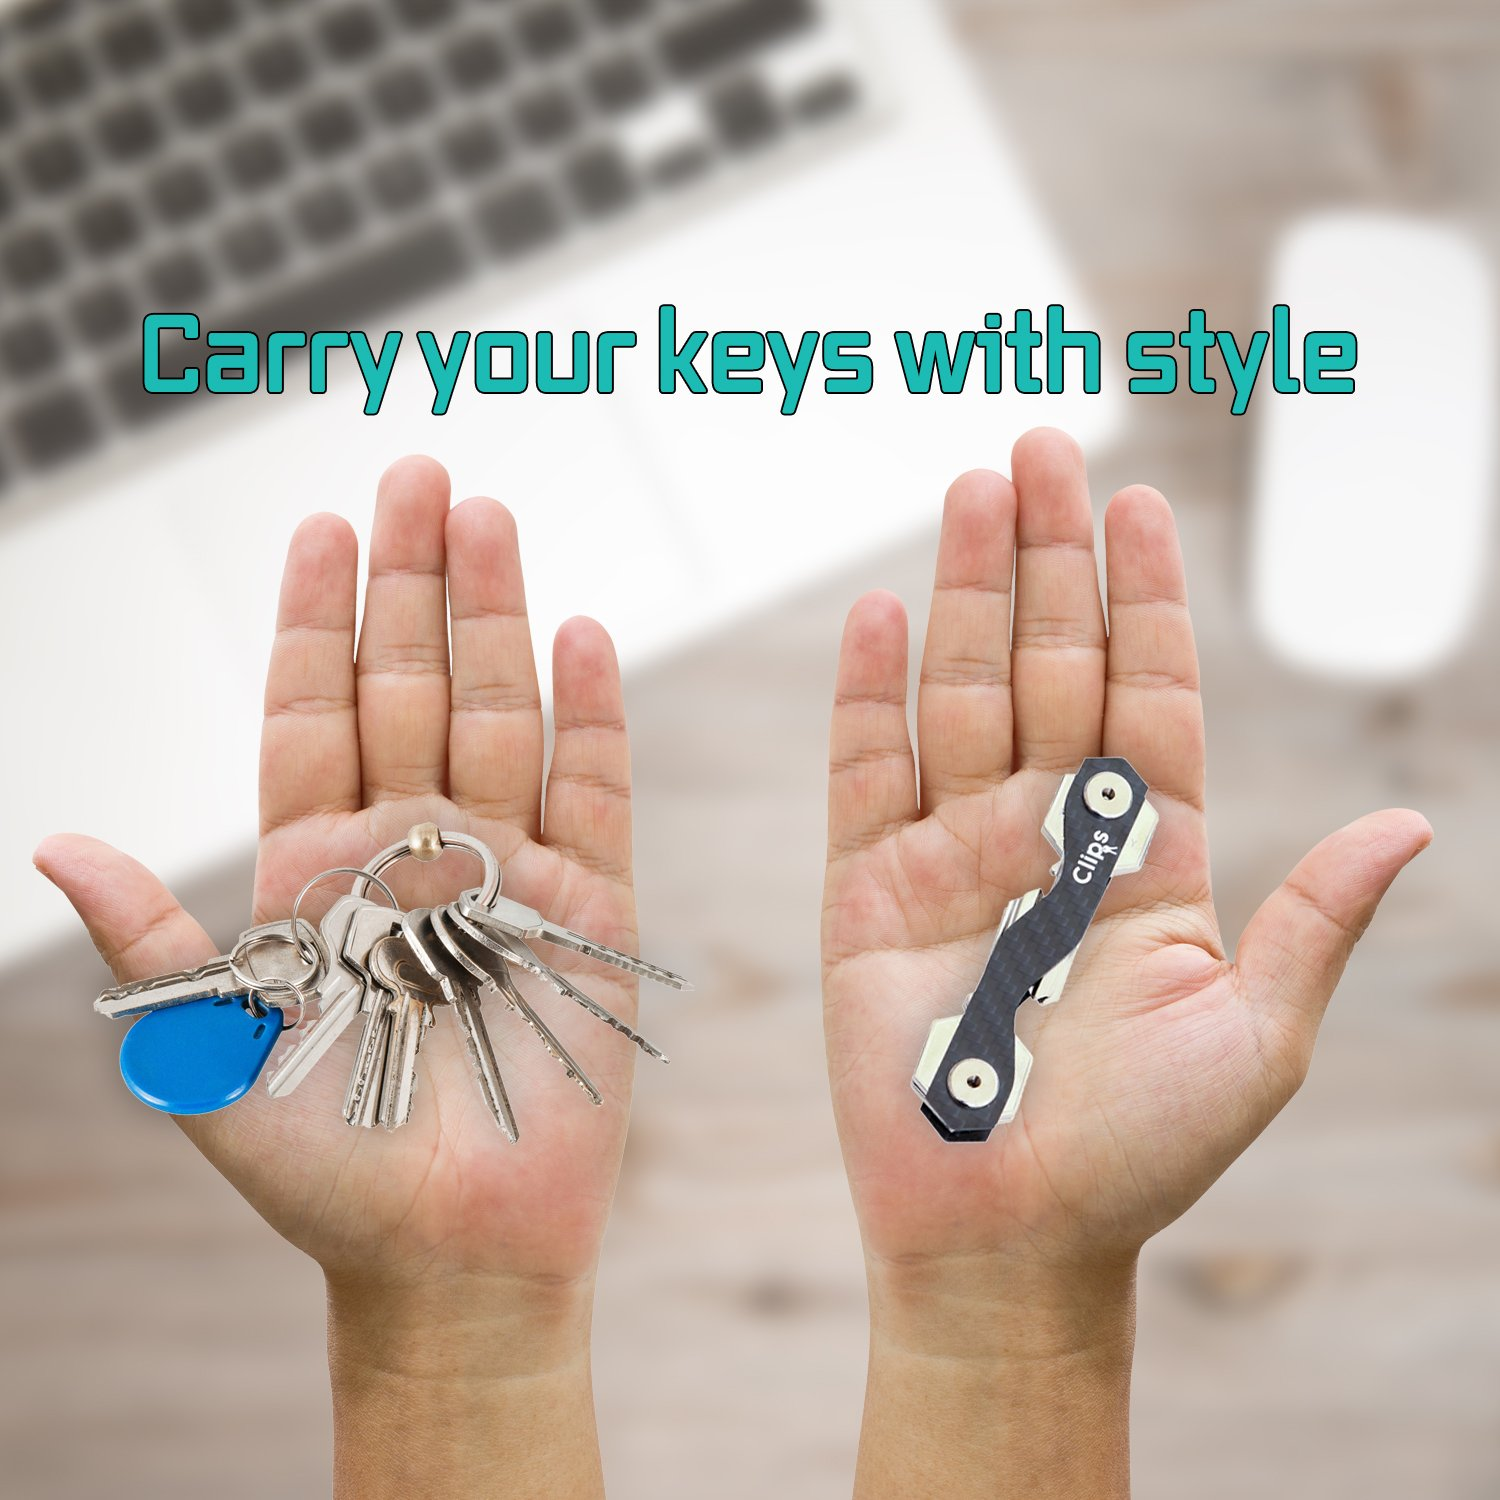 Smart Compact Key Holder Keychain - Made of Carbon Fiber & Stainless Steel- Pocket Organizer Up to 18 Keys- Lightweight, Strong-Key Gadget Includes Sim & Bottle Opener, Carabiner & More (Black) by clips (Image #4)